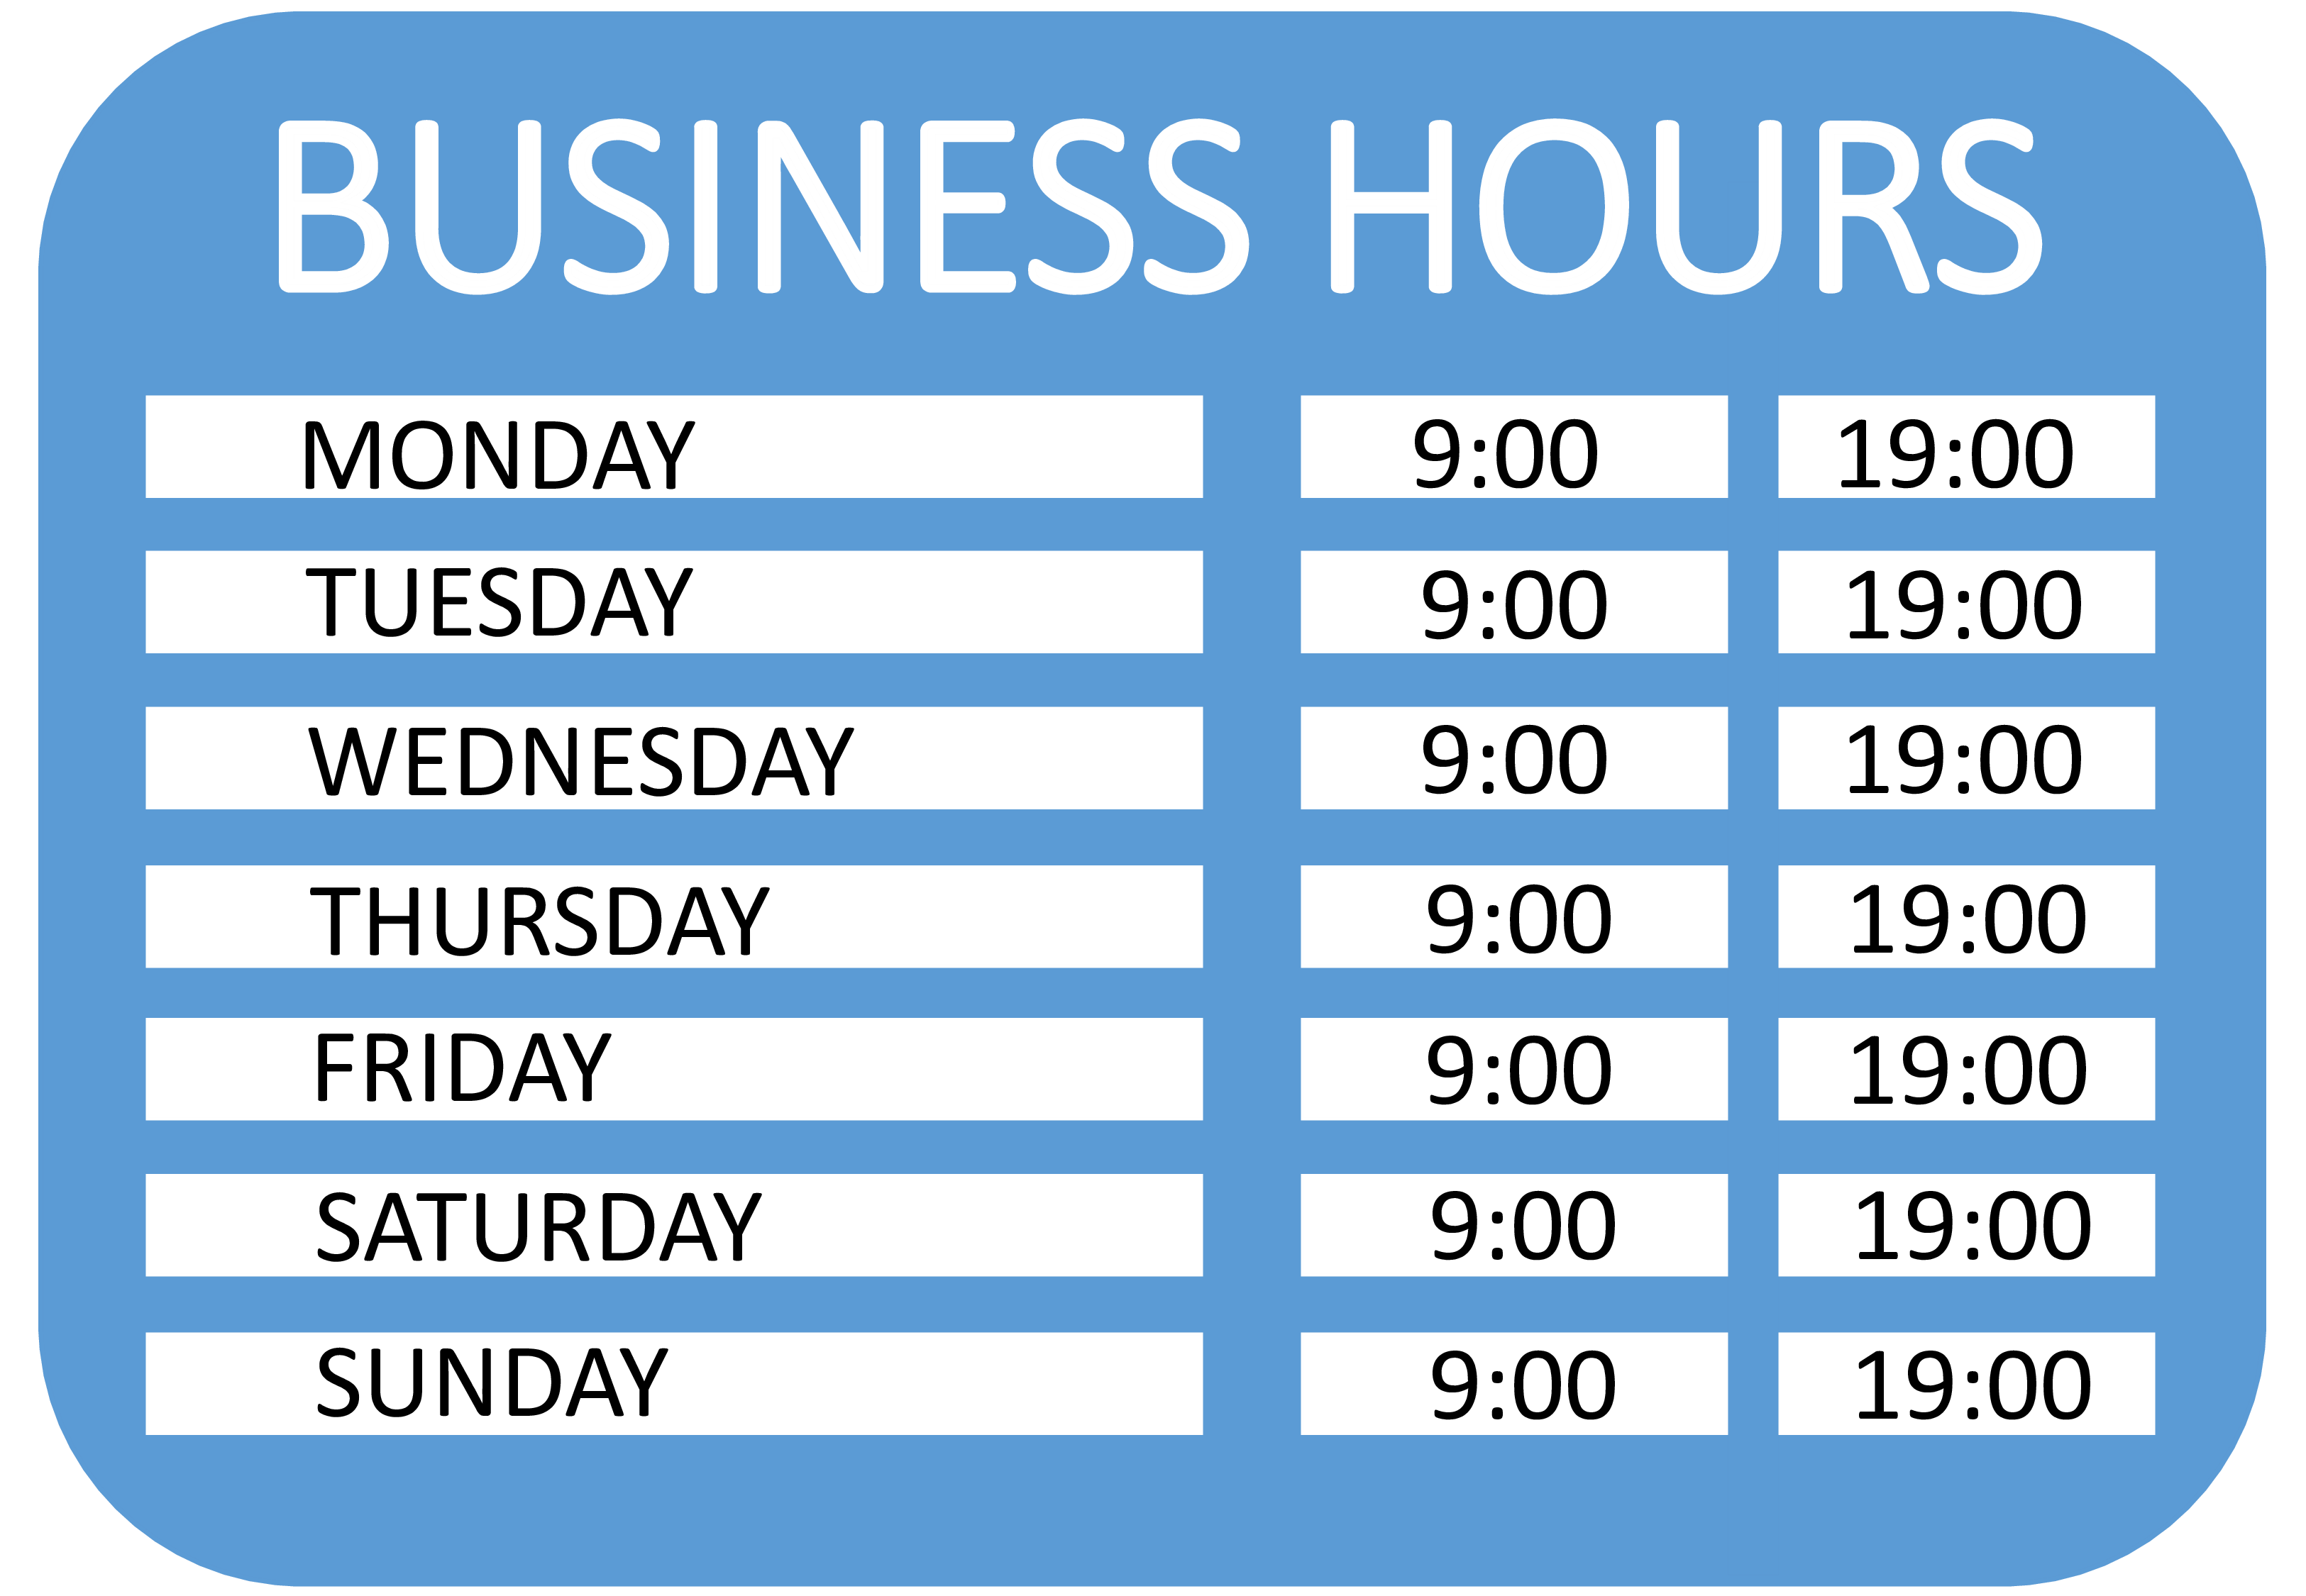 Free operating hours sign templates at allbusinesstemplates operating hours sign main image download template accmission Images